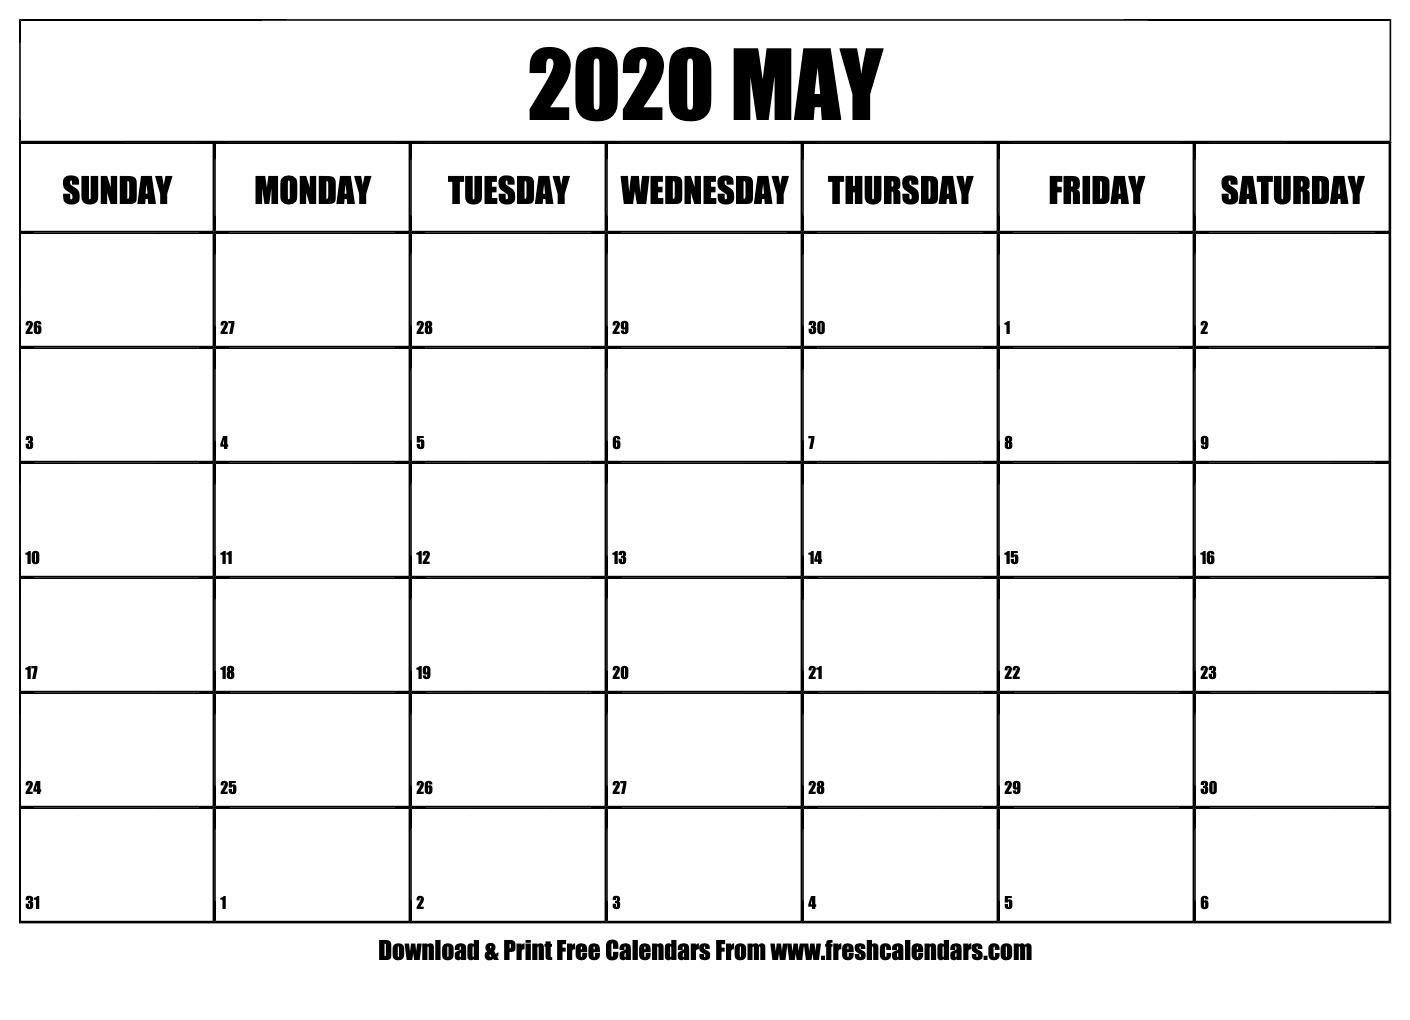 May 2020 Calendar Printable - Fresh Calendars